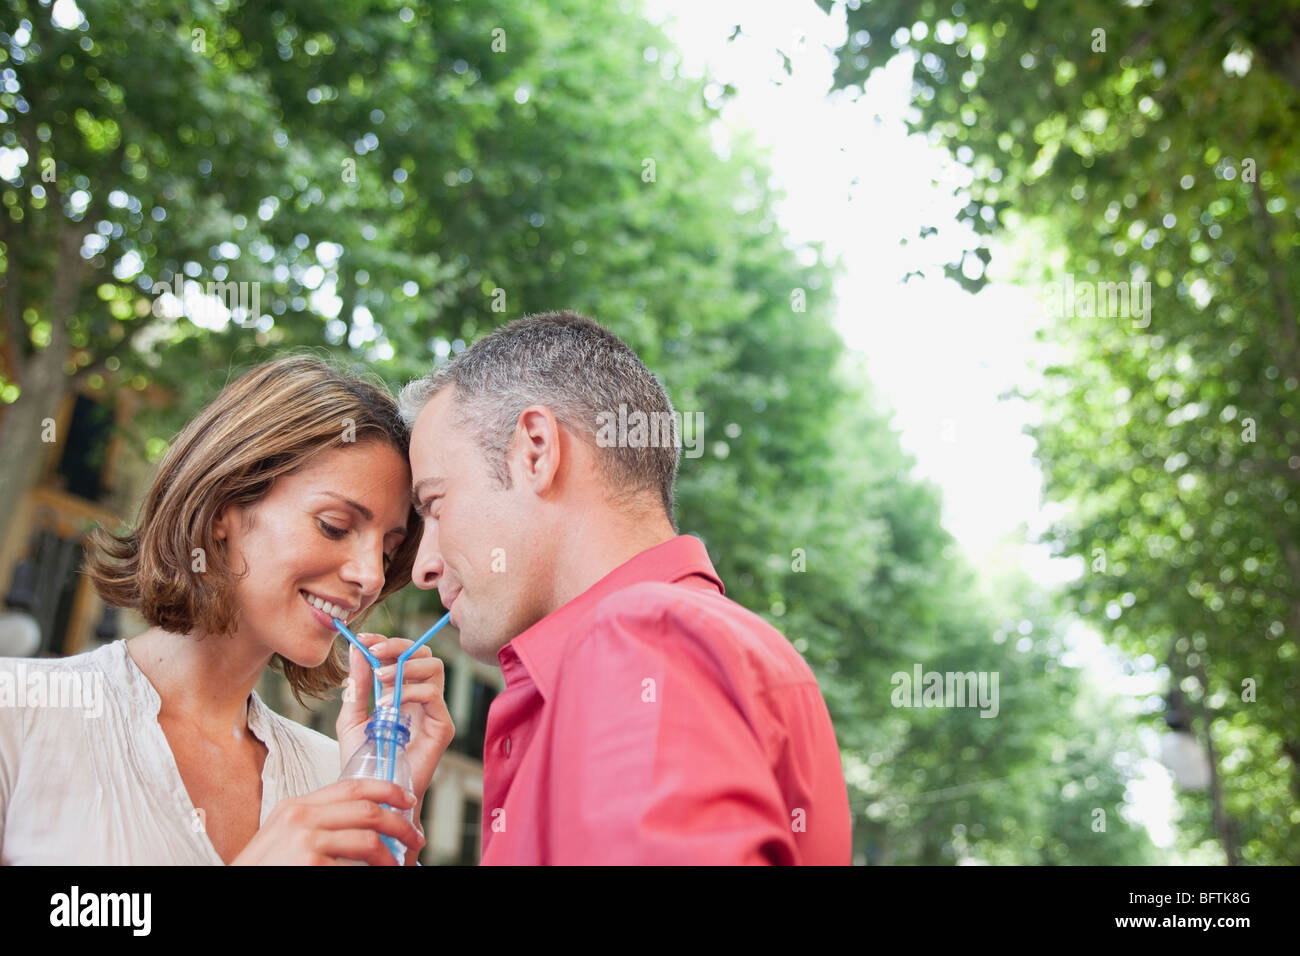 couple drinking out same glass - Stock Image